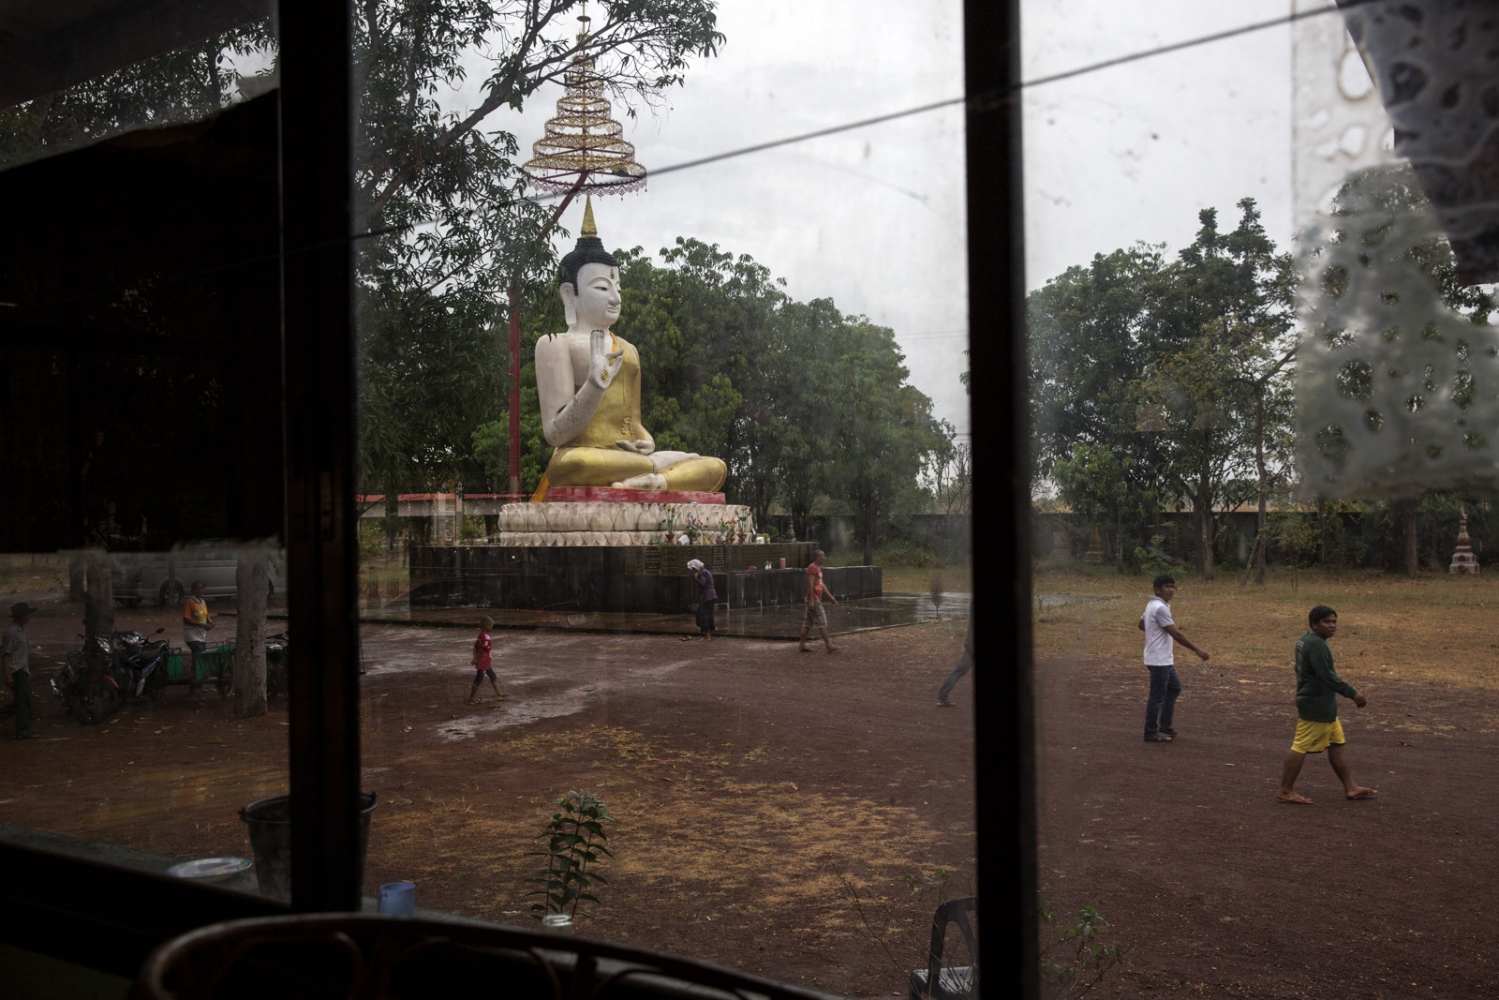 A village meeting of those who will walk the next day is held at a local temple in Wamon Niwat.